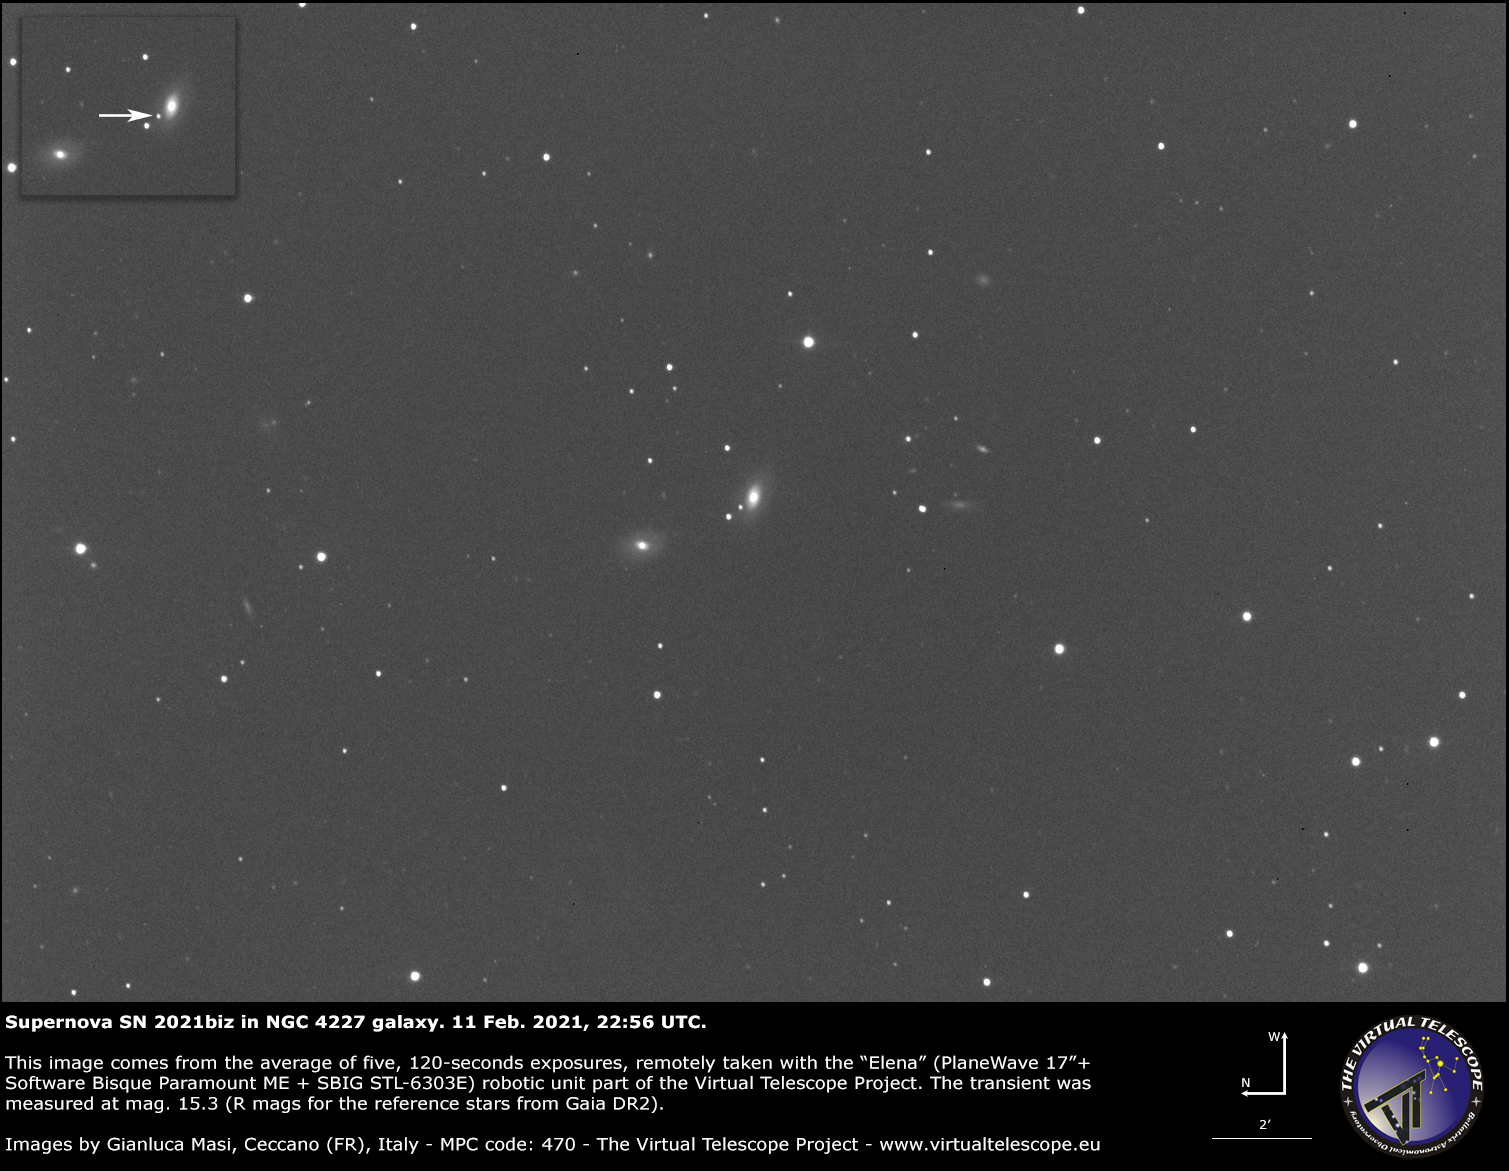 Supernova SN 2021biz in NGC 4227 galaxy: 11 Feb. 2021.